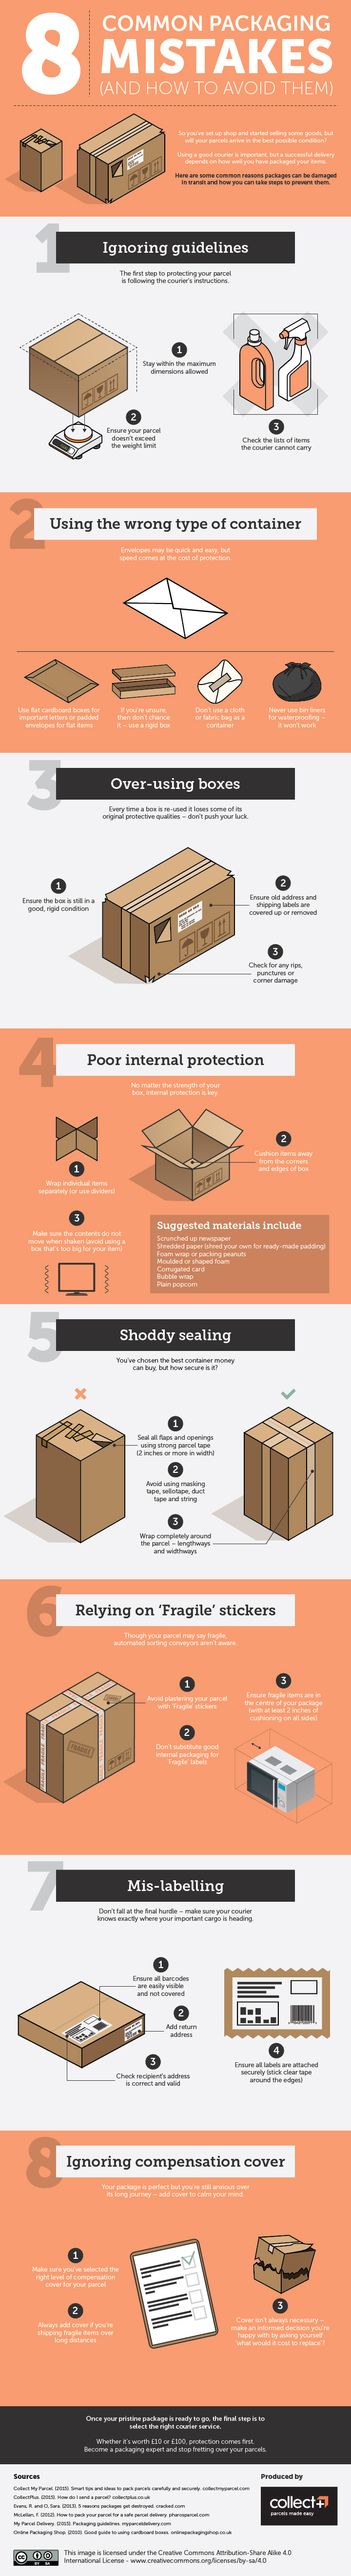 8-common-packaging-mistakes-(and-how-to-avoid-them)-v2 (3)